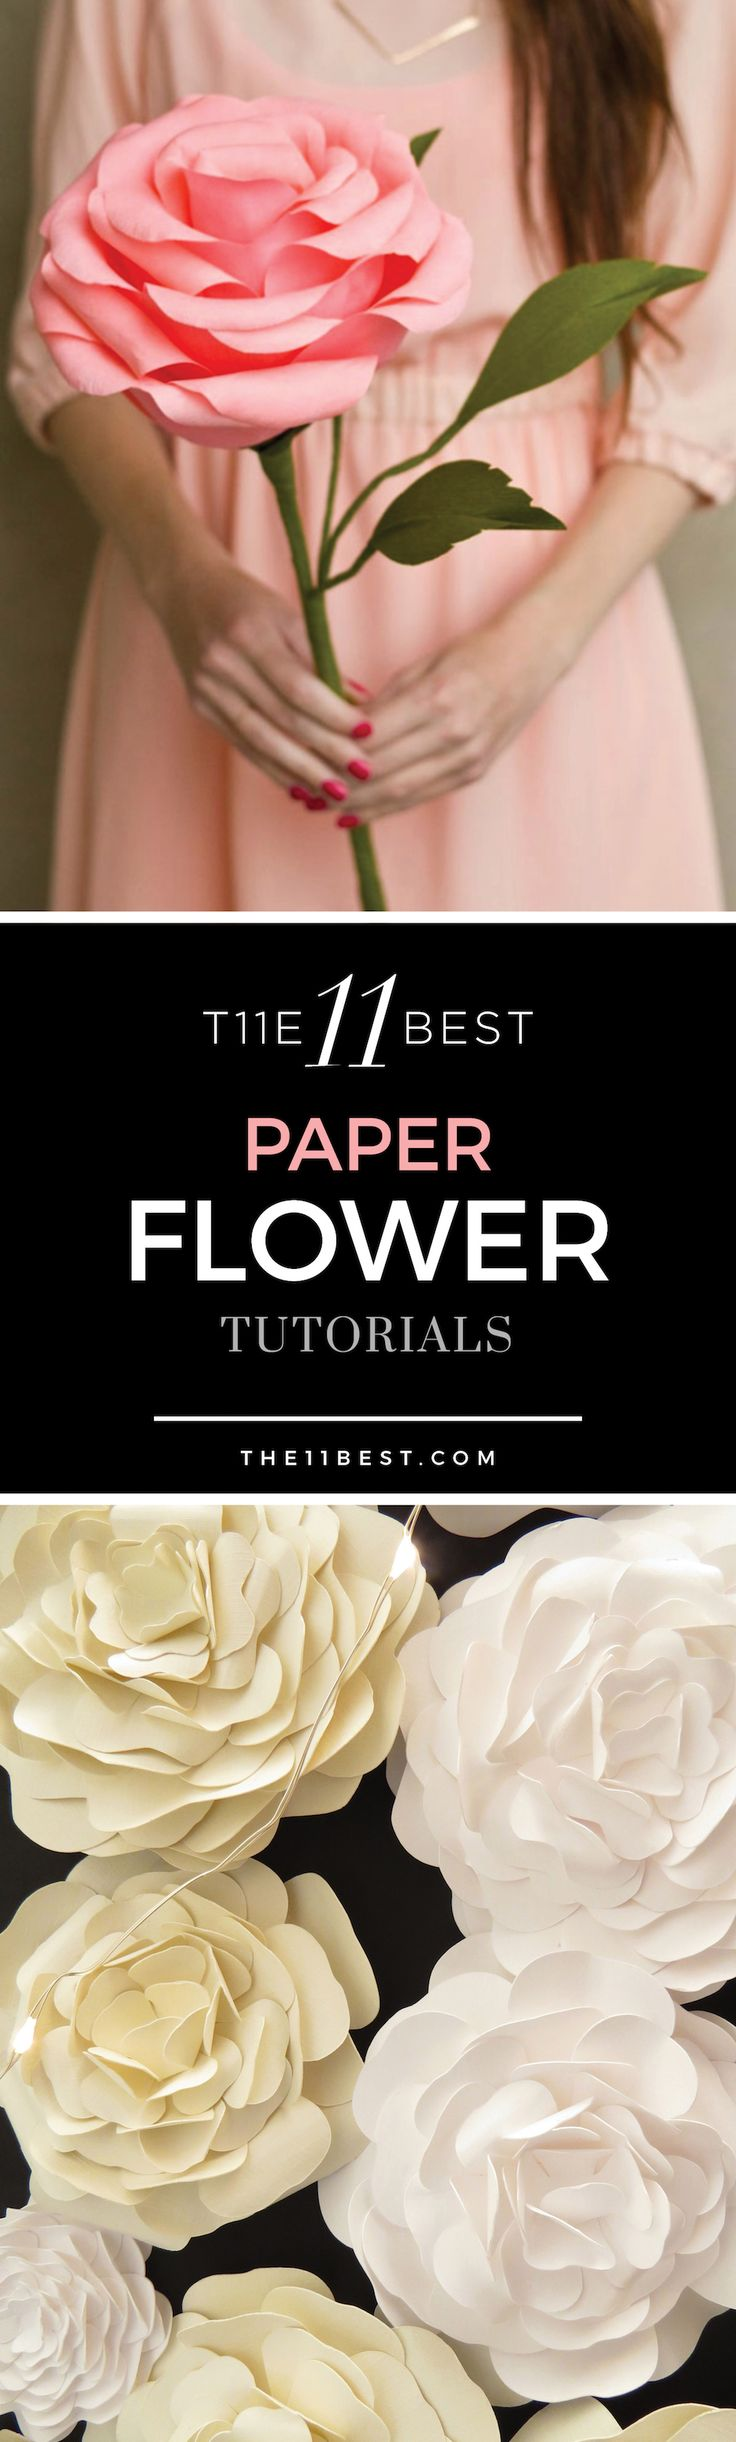 The 11 Best Paper Flower Making Tutorials